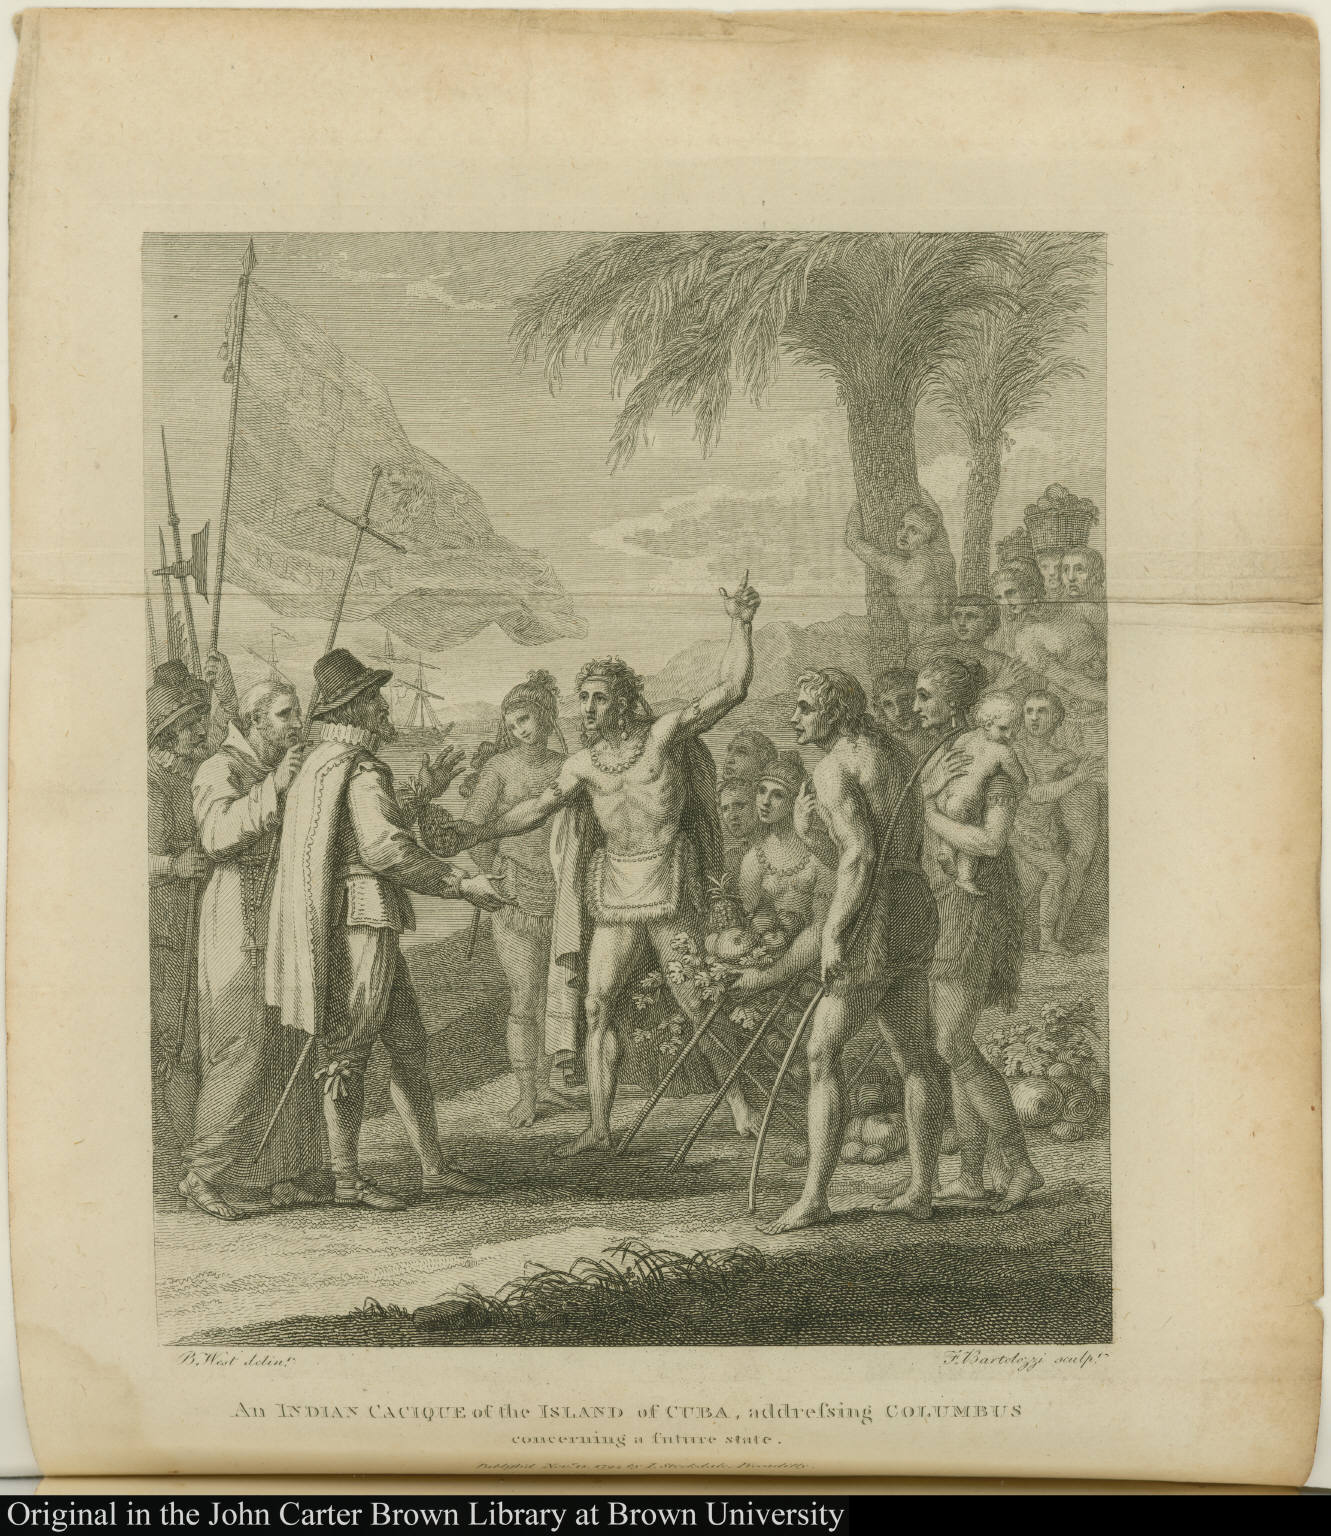 An Indian Cacique of the Island of Cuba, addressing Columbus concerning a future state.